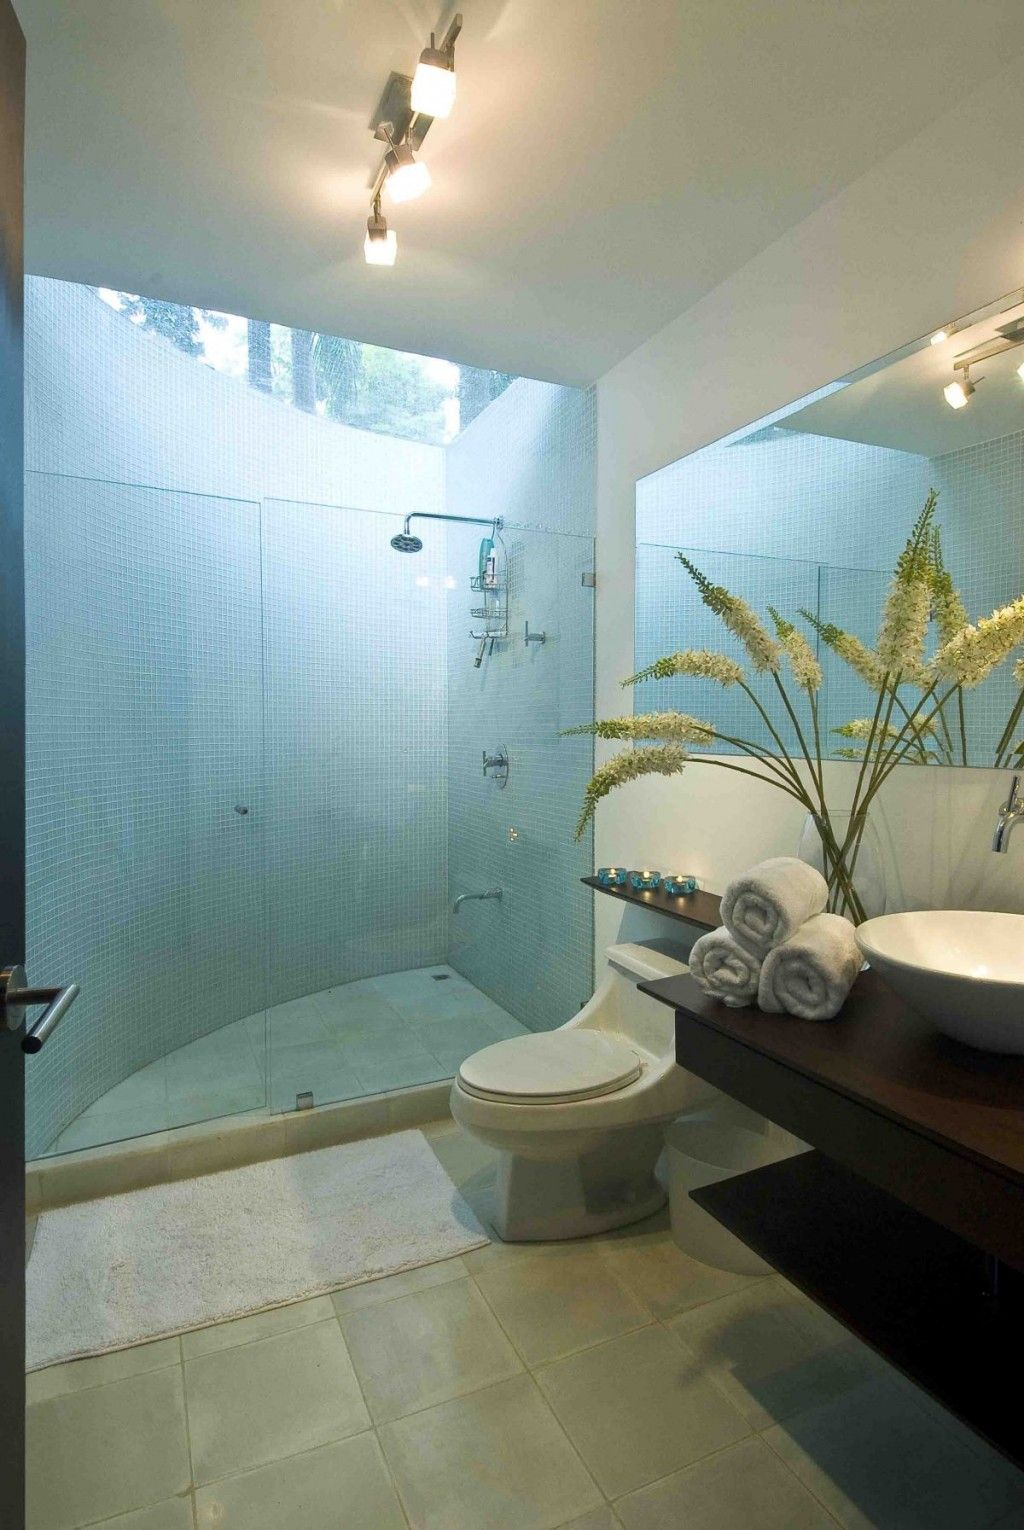 Http Www A1houston Com 69896 Bathroom Virtual Bathroom Designer Good Ideas Html